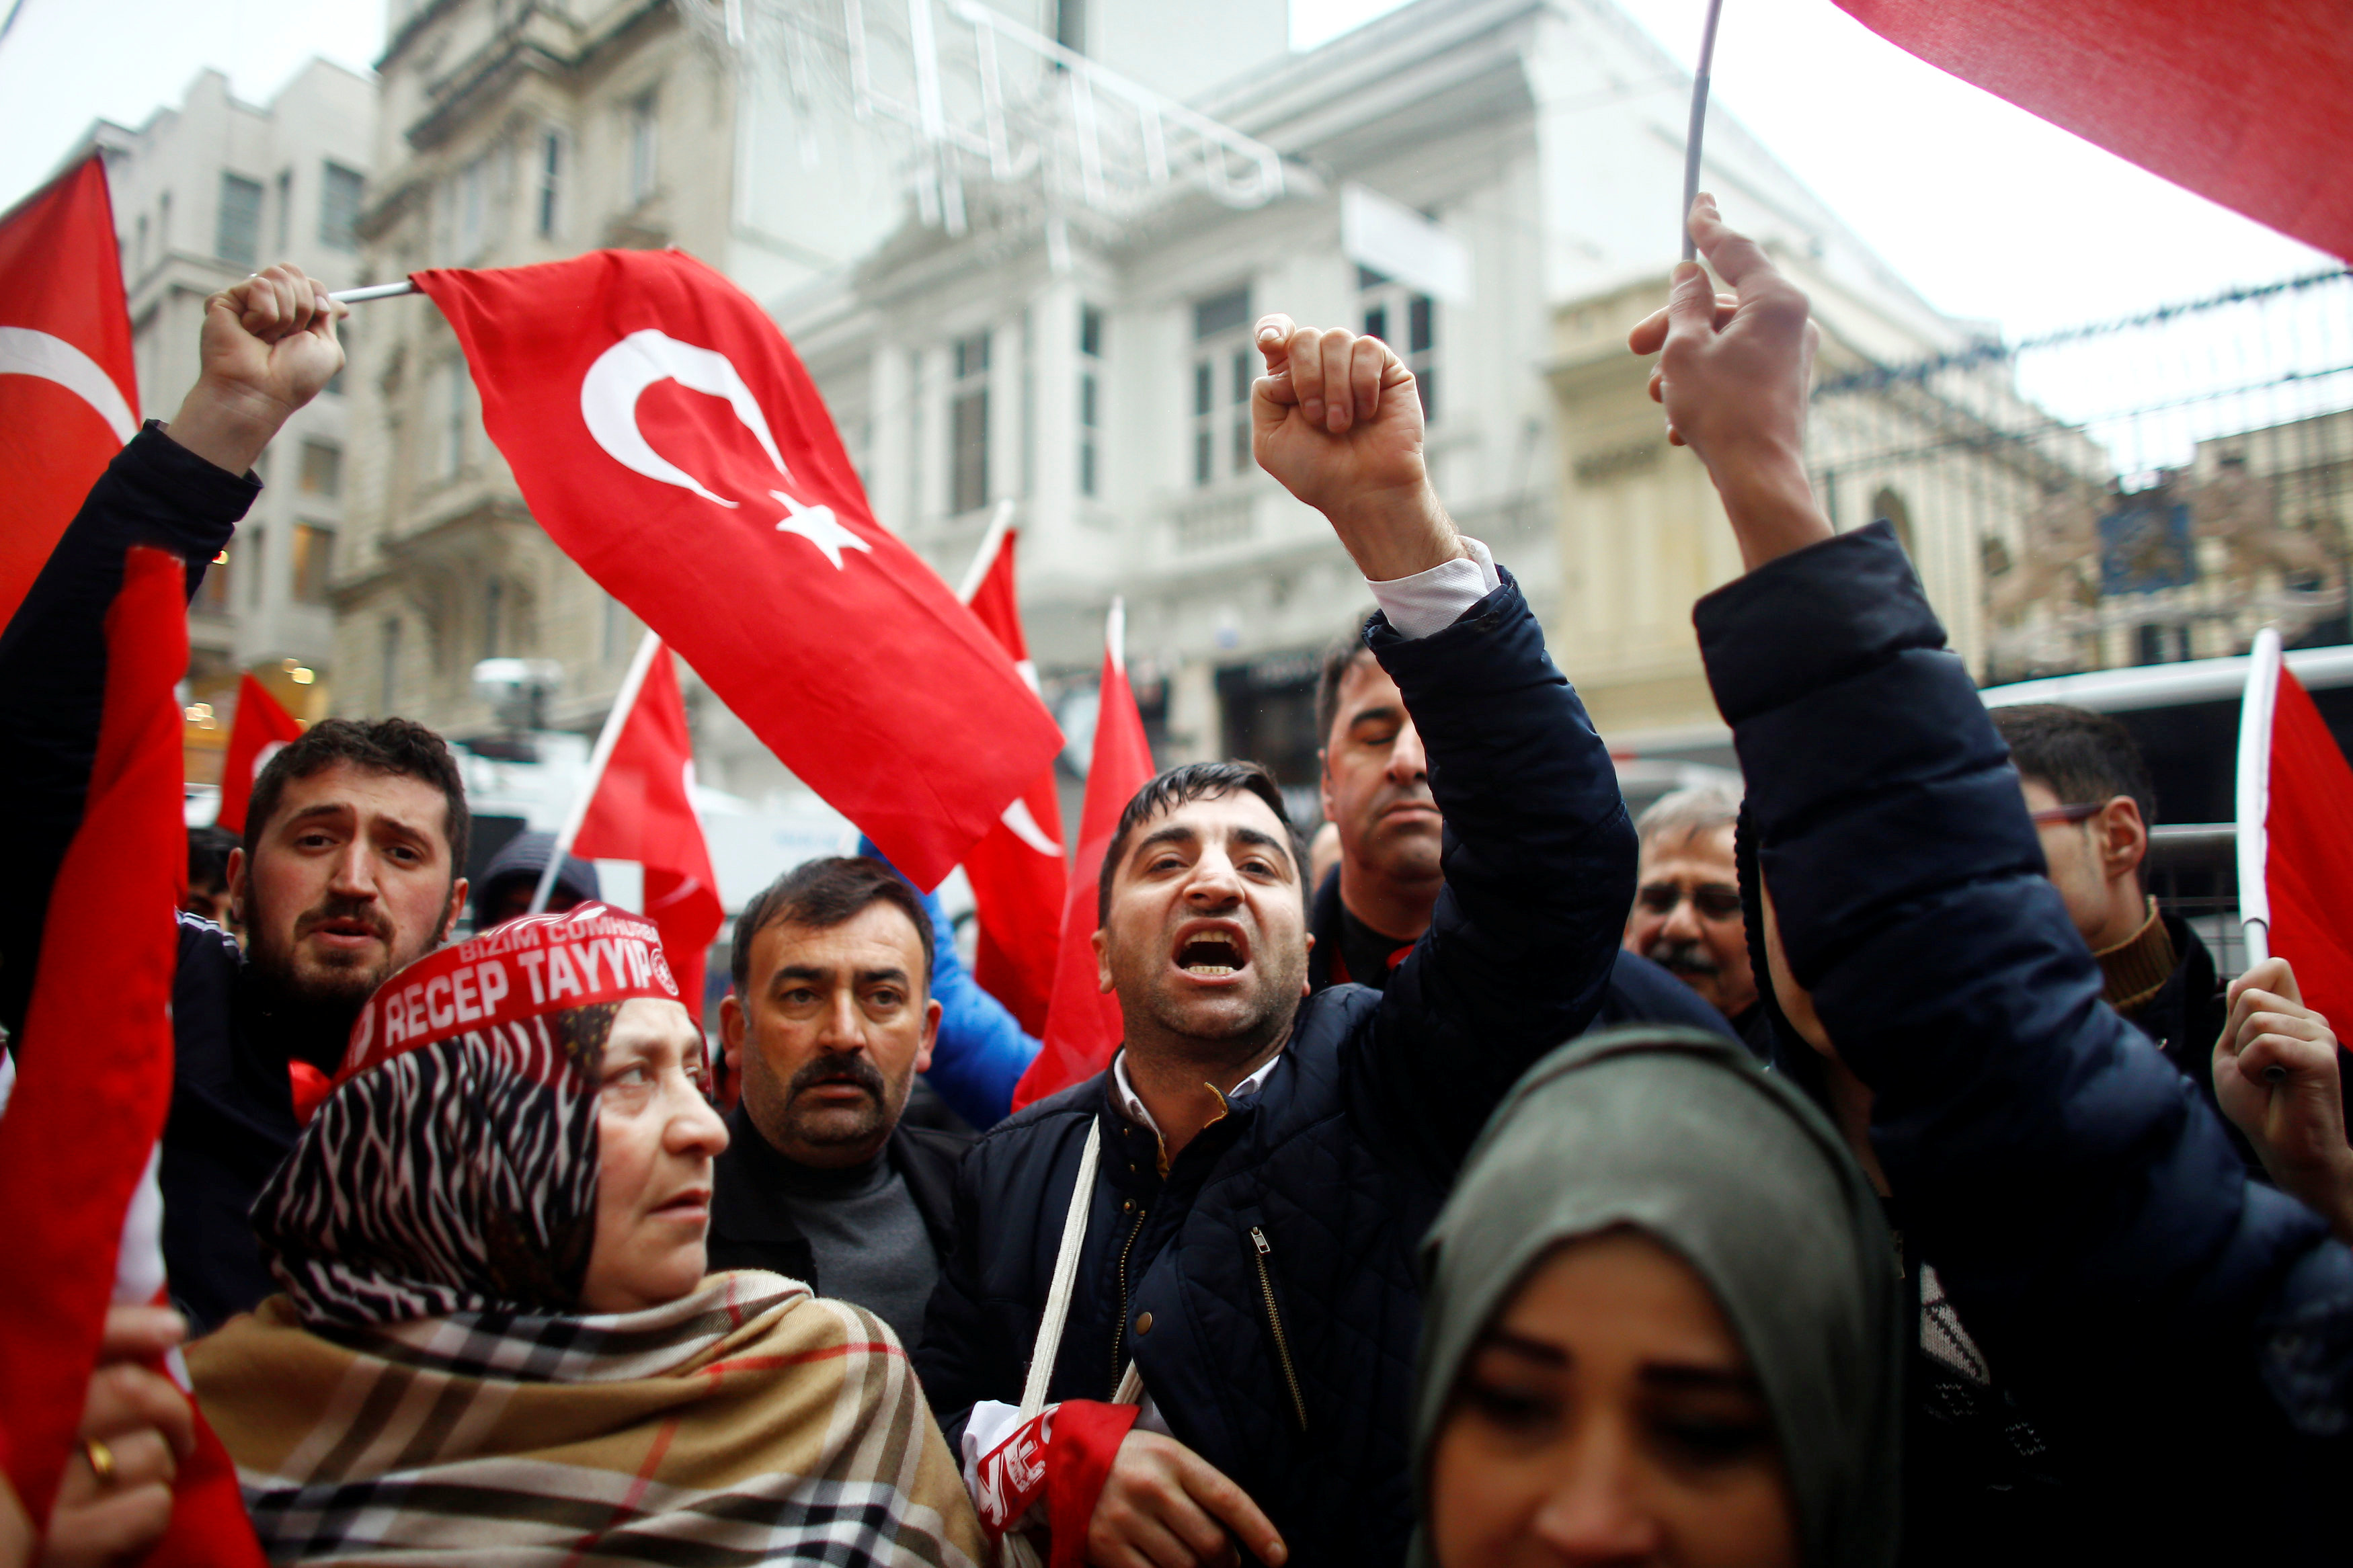 People shout slogans during a protest in front of the Dutch Consulate in Istanbul, Turkey on March 12, 2017. (REUTERS/Osman Orsal)